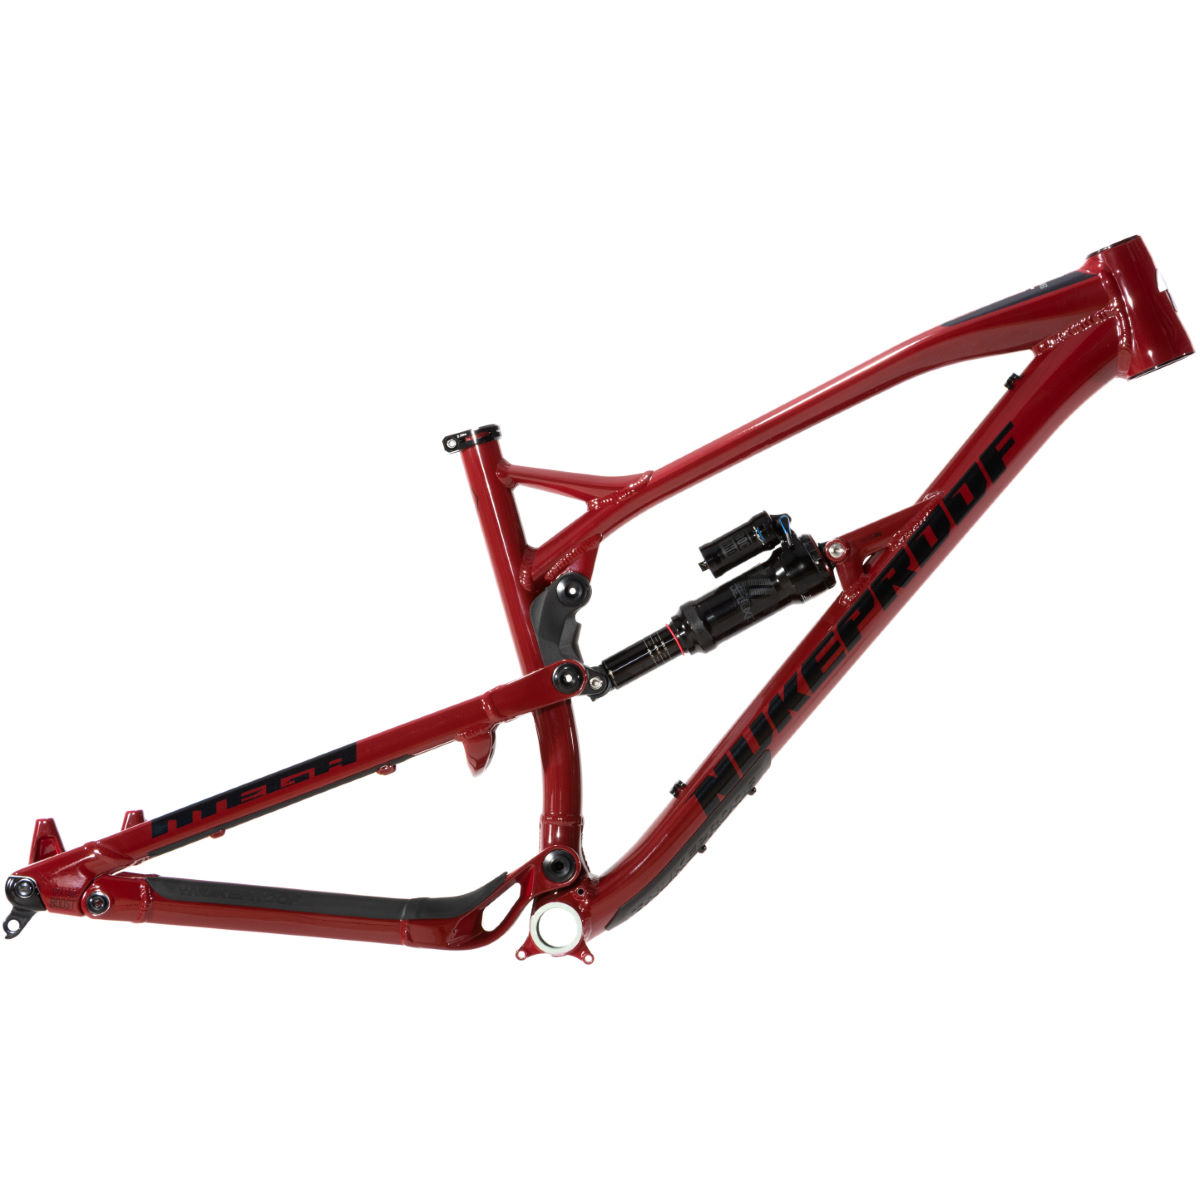 Nukeproof Nukeproof Mega 275 Alloy Mountain Bike Frame (2019)   Full Sus Mountain Bike Frames